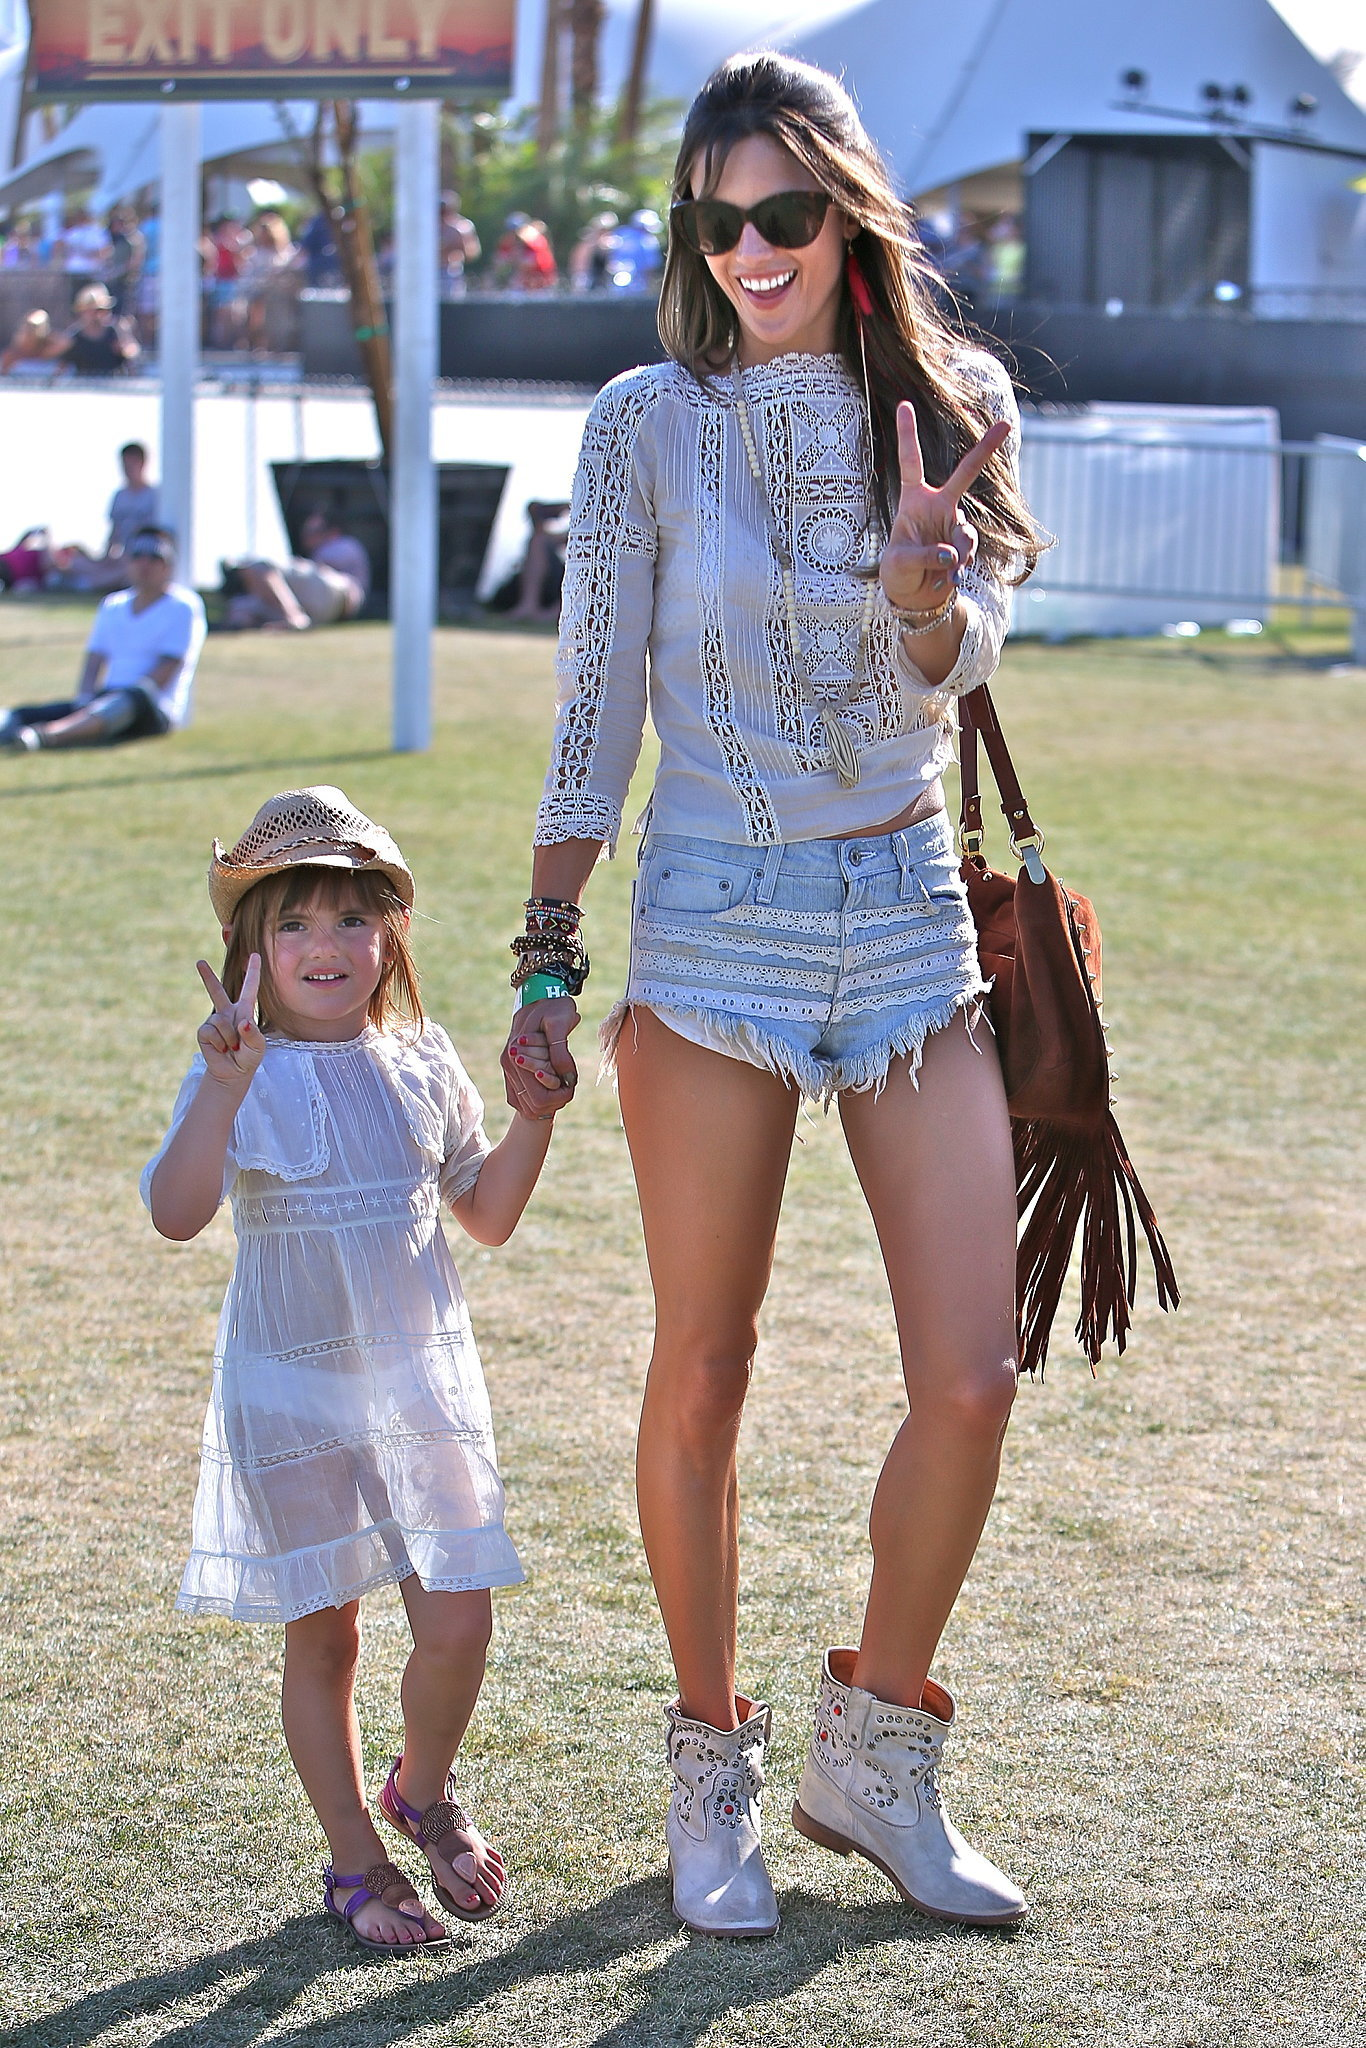 Alessandra Ambrosio brought her daughter, Anja, to watch The Lumineers perform at Coachella in 2013.